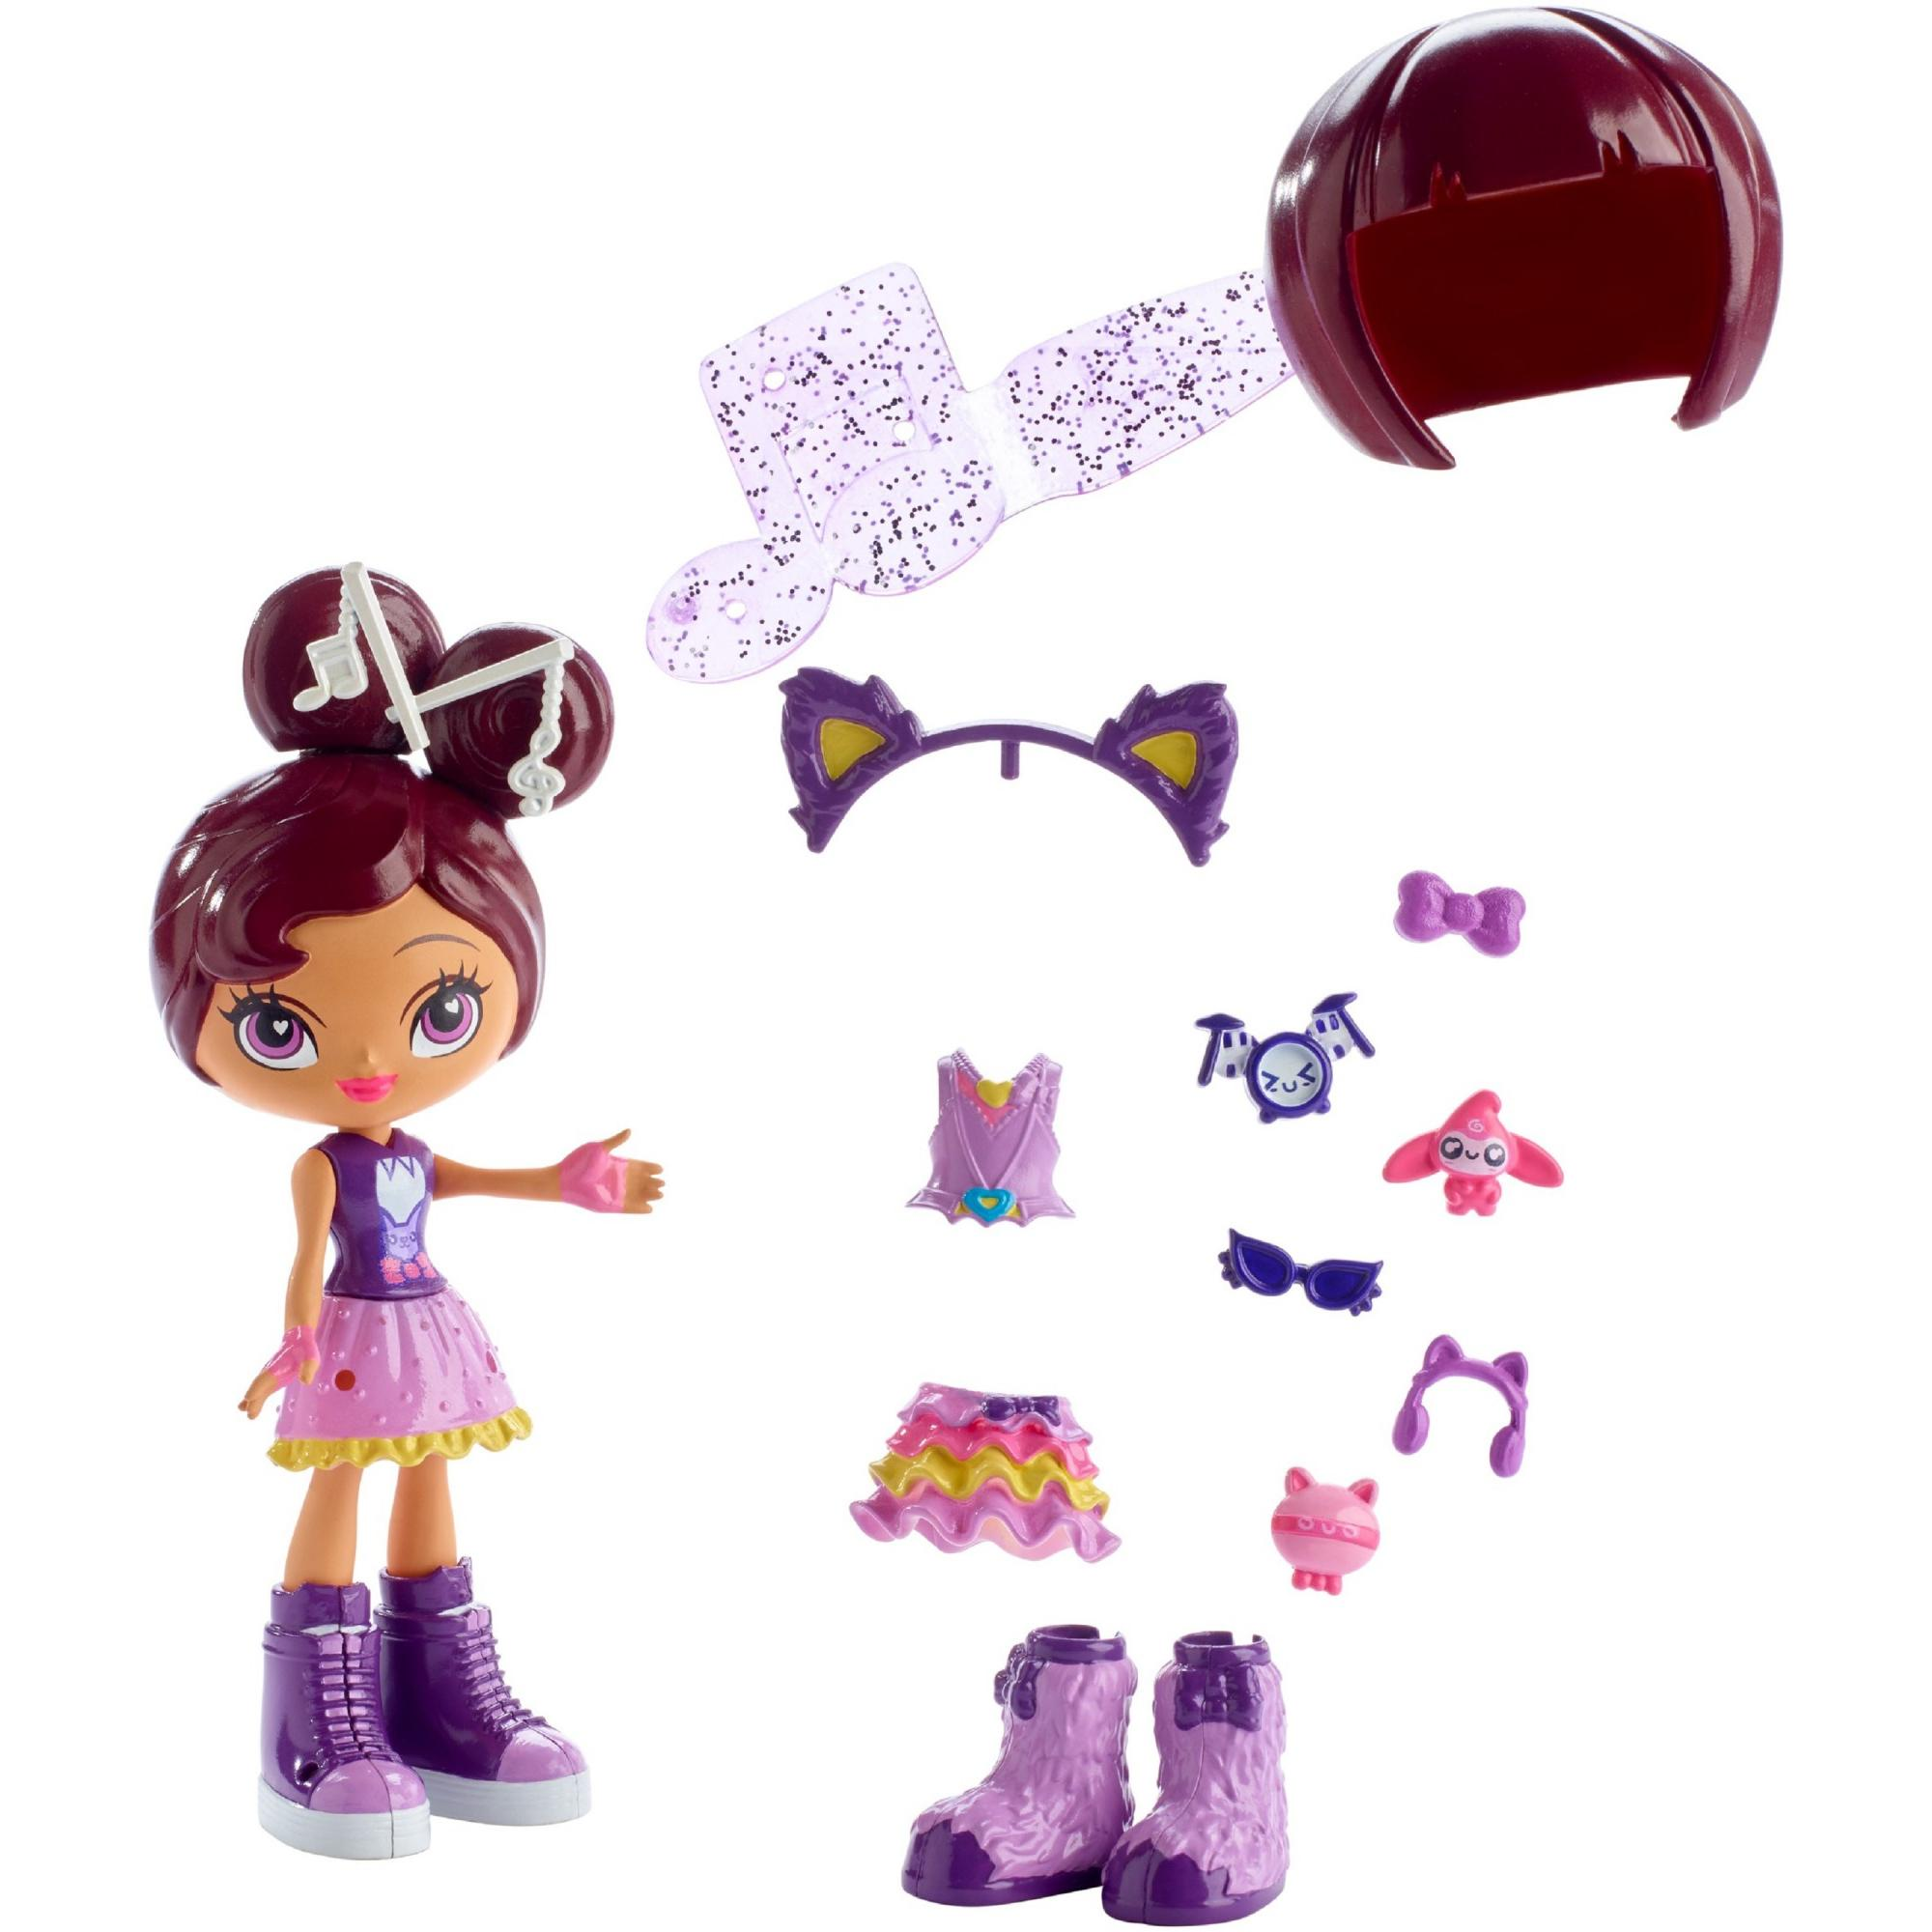 KuuKuu Harajuku Music Fashion Swap Fun Only $1.99